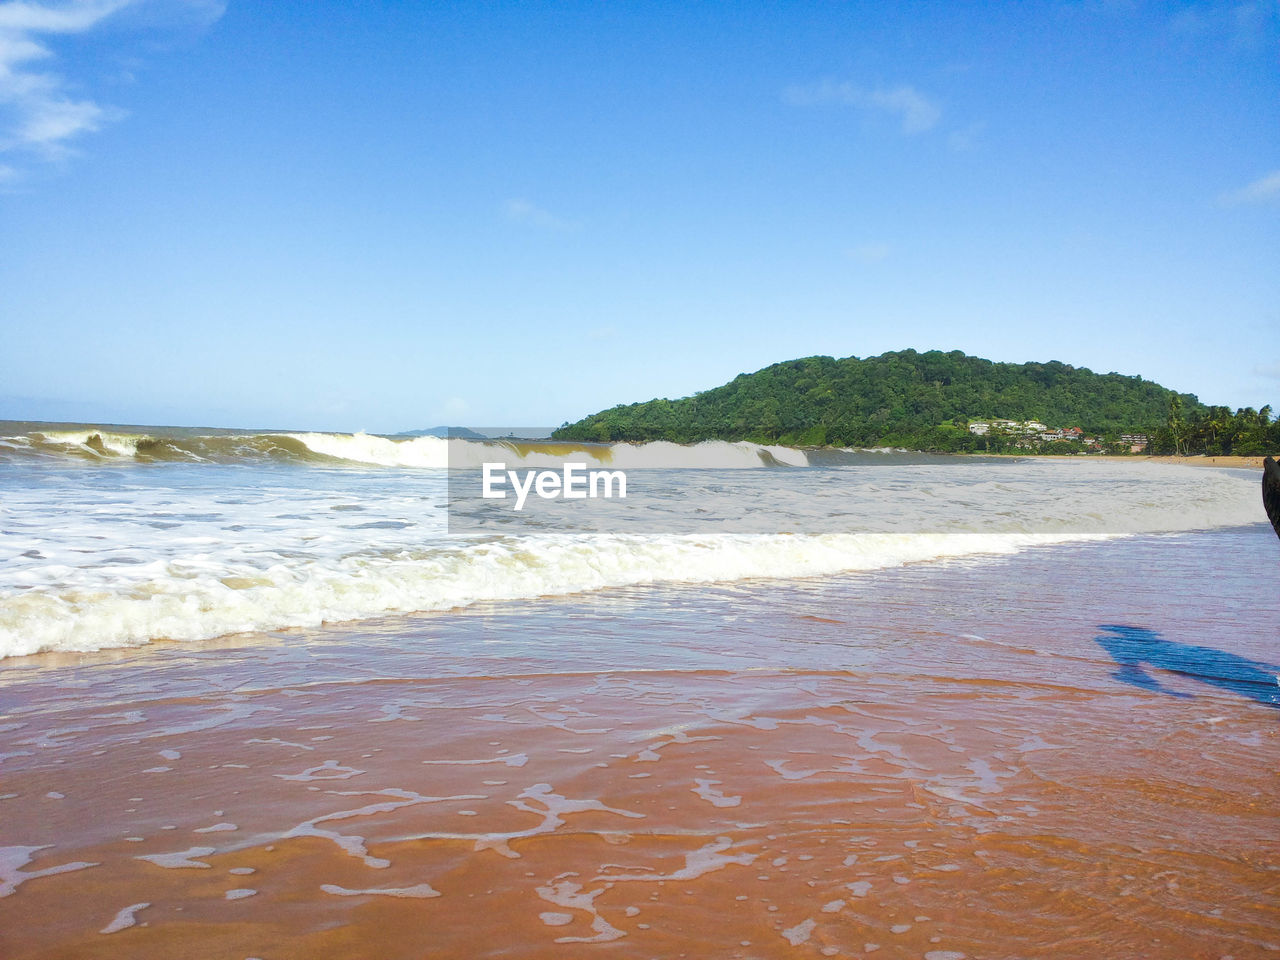 sea, beach, beauty in nature, nature, wave, water, scenics, shore, sand, outdoors, no people, tranquil scene, day, tranquility, horizon over water, sky, blue, clear sky, travel destinations, vacations, summer